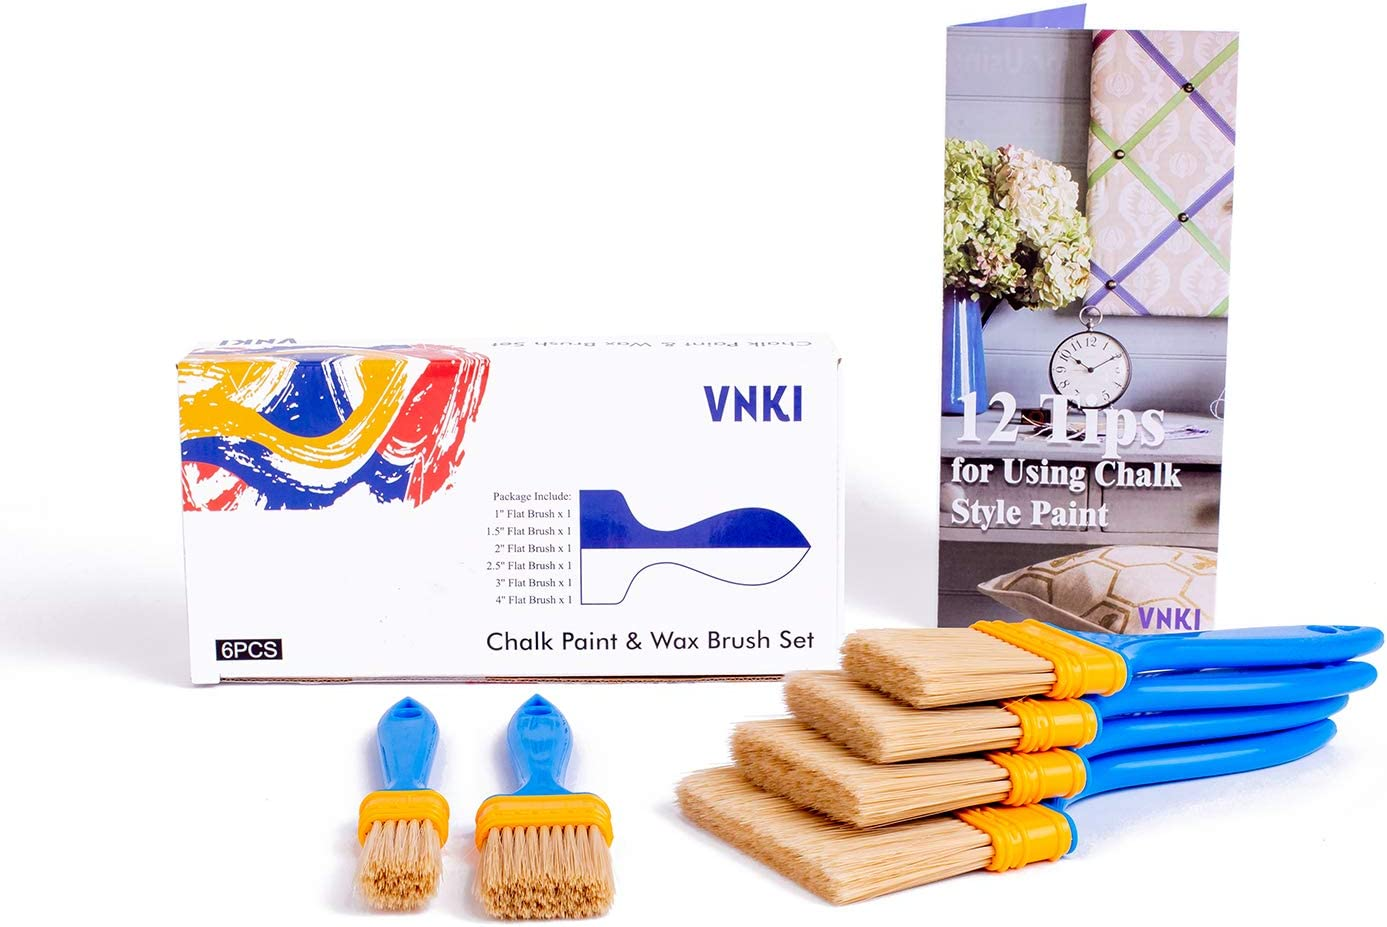 VNKI 6PCS Chalk Paint /& Wax Brush Set for Painting and Refinishing Furniture (1,1.5,2,2.5,3,4in)